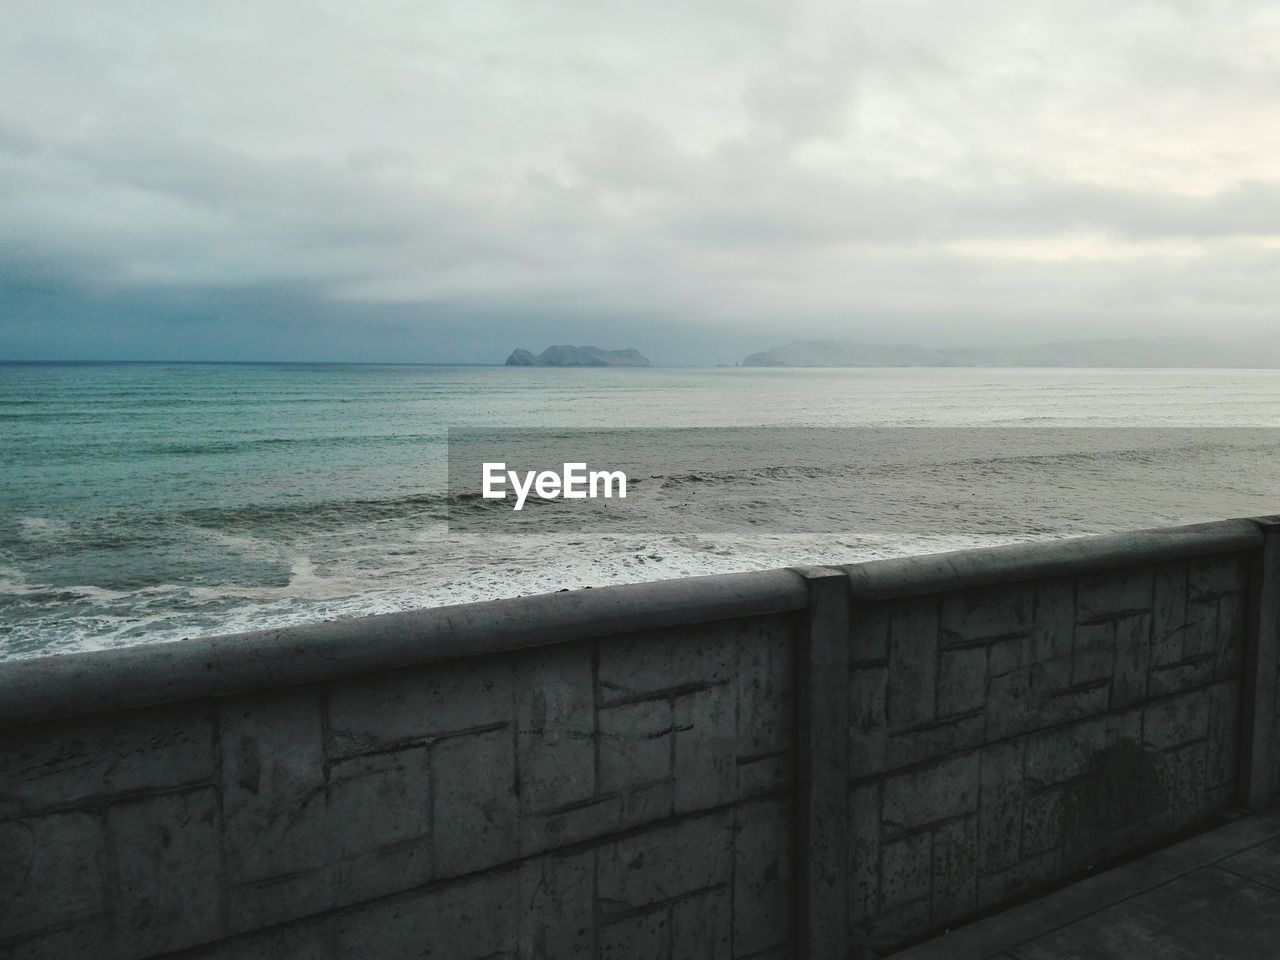 Scenic view of sea against cloudy sky seen from pier